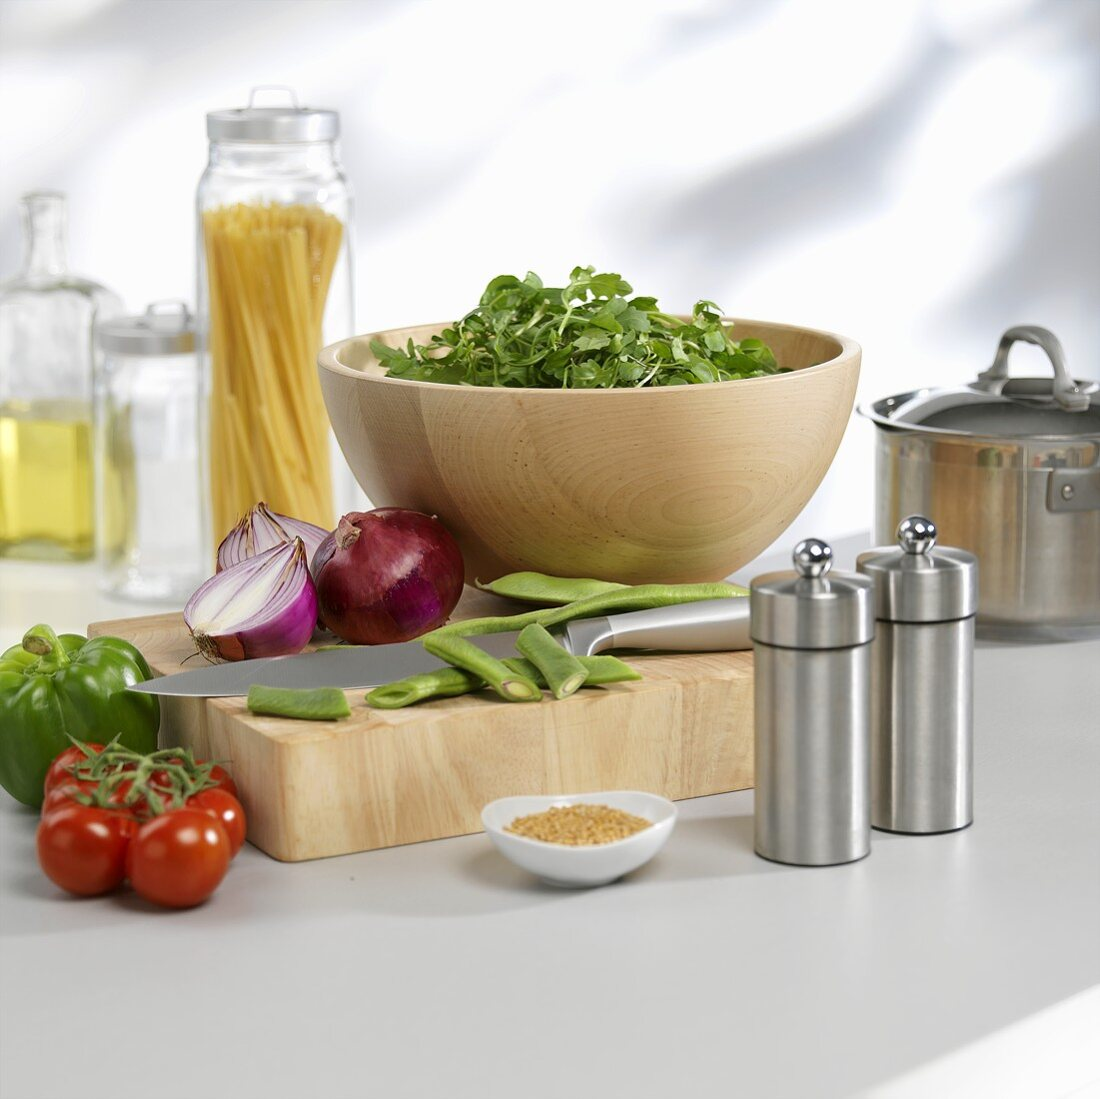 An arrangement of vegetables on a chopping board and a salad in a wooden bowl